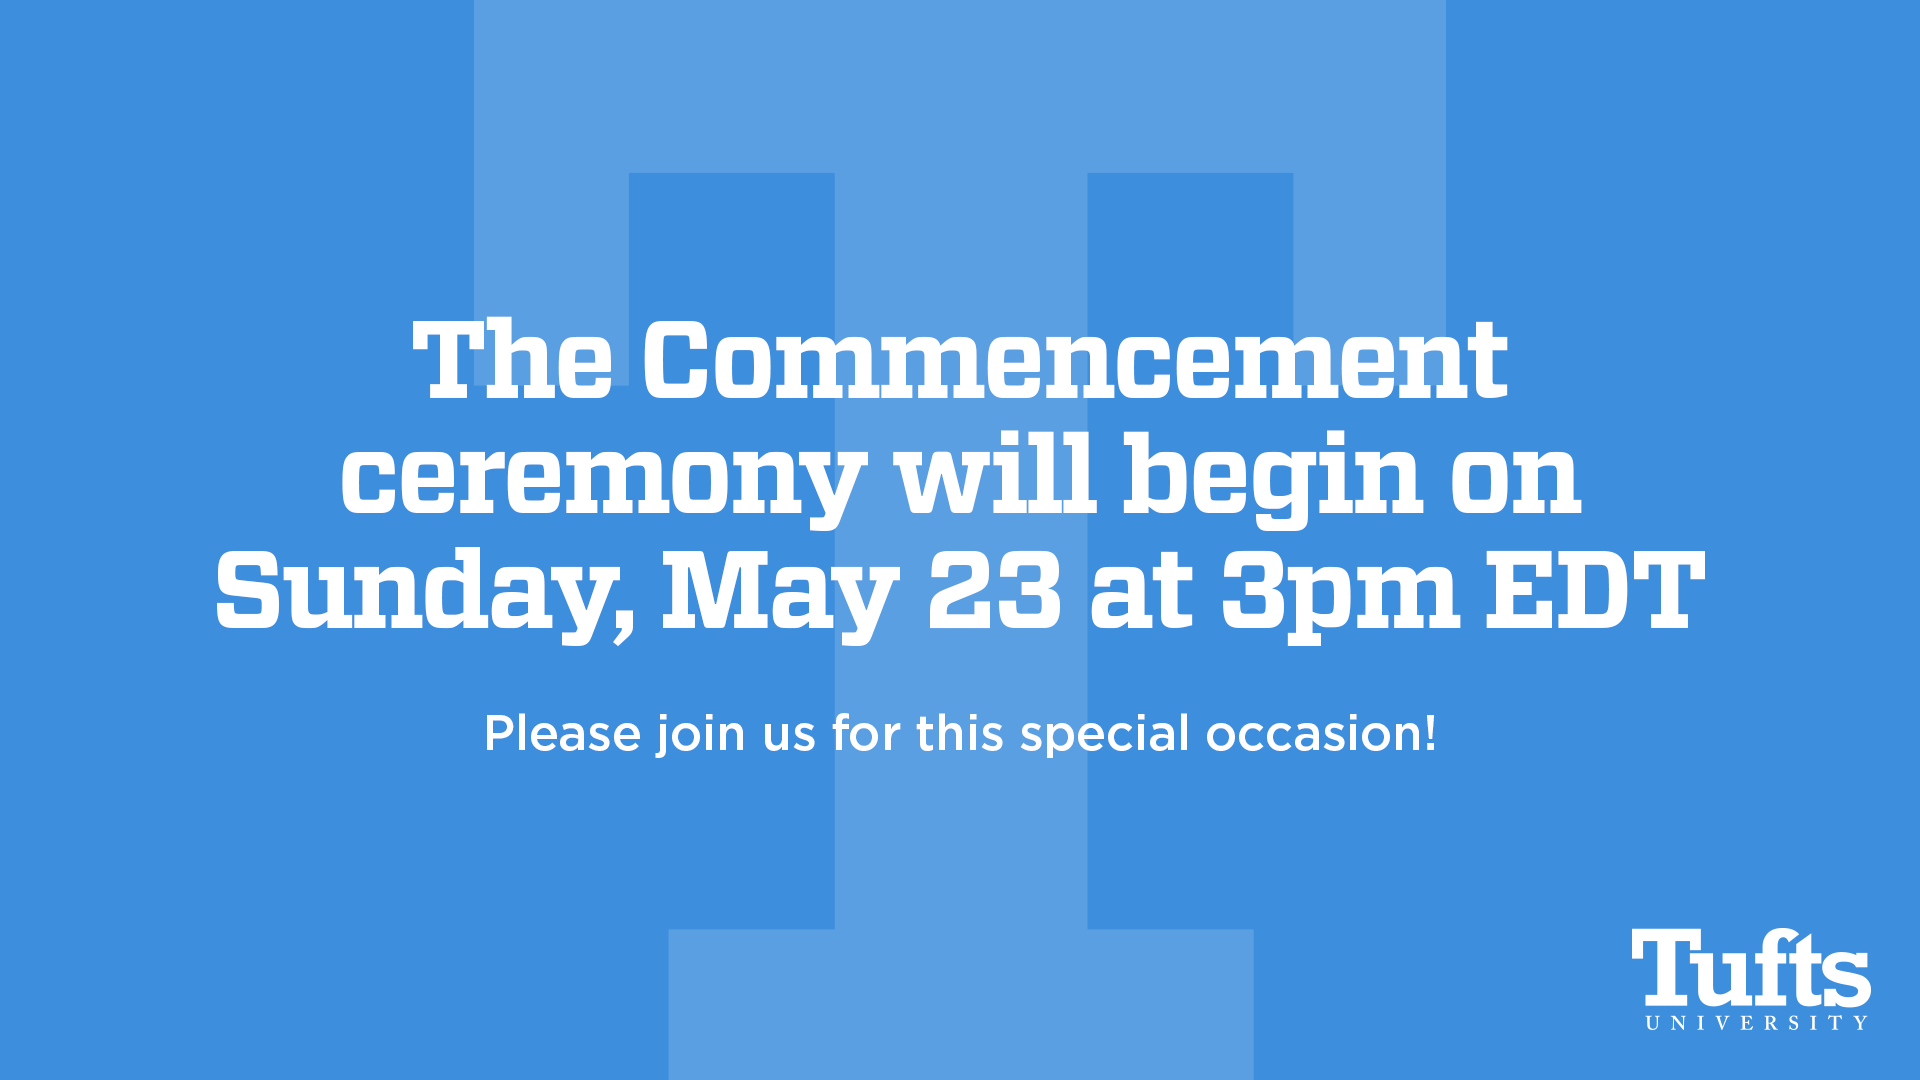 The Commencement ceremony will begin on Sunday, May 23 at 3 p.m. EDT